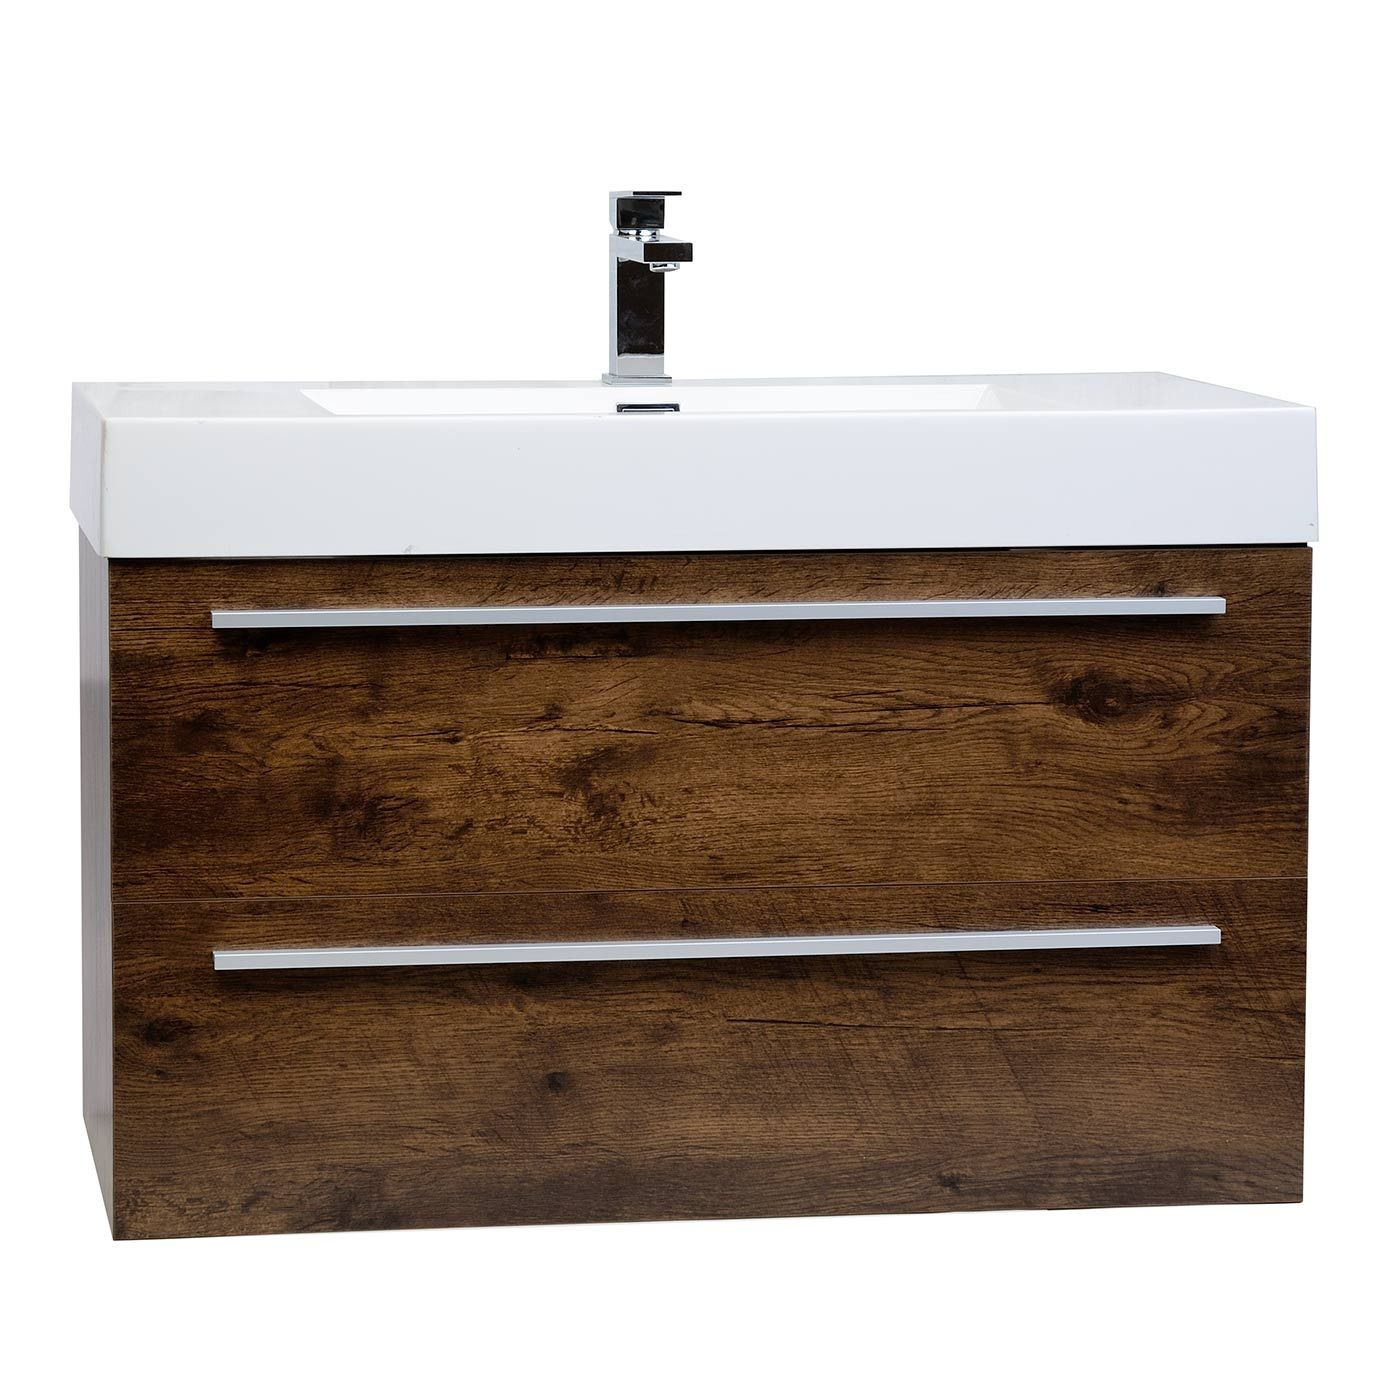 "355"" Wallmount Contemporary Bathroom Vanity Rosewood Tnm900Rw Adorable Modern Bathroom Vanity 2018"